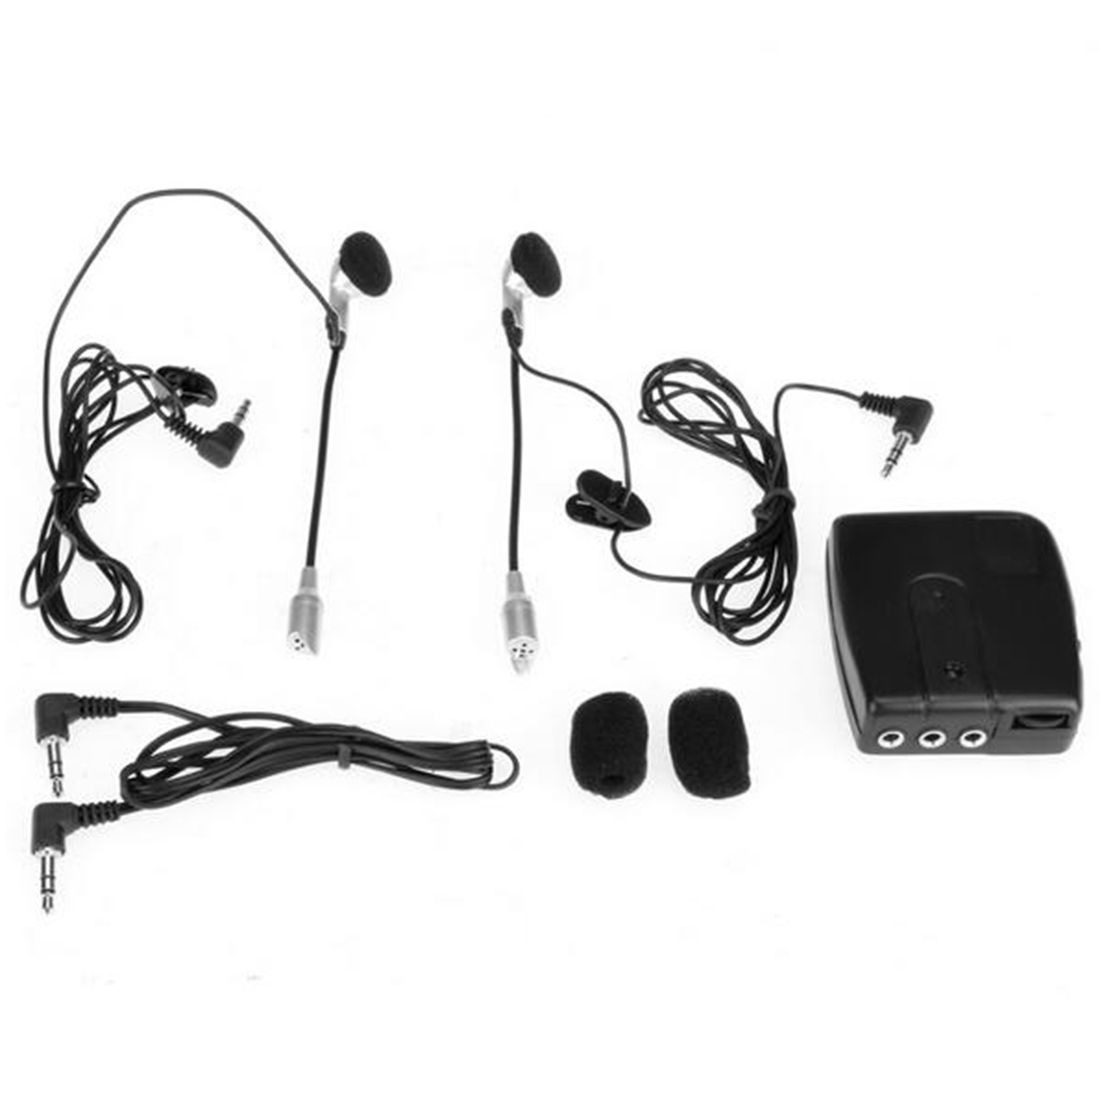 Dewtreetali 2 way Moto Interphone Moto Casque Casque Communication Système Interphone moteur Casque Écouteur